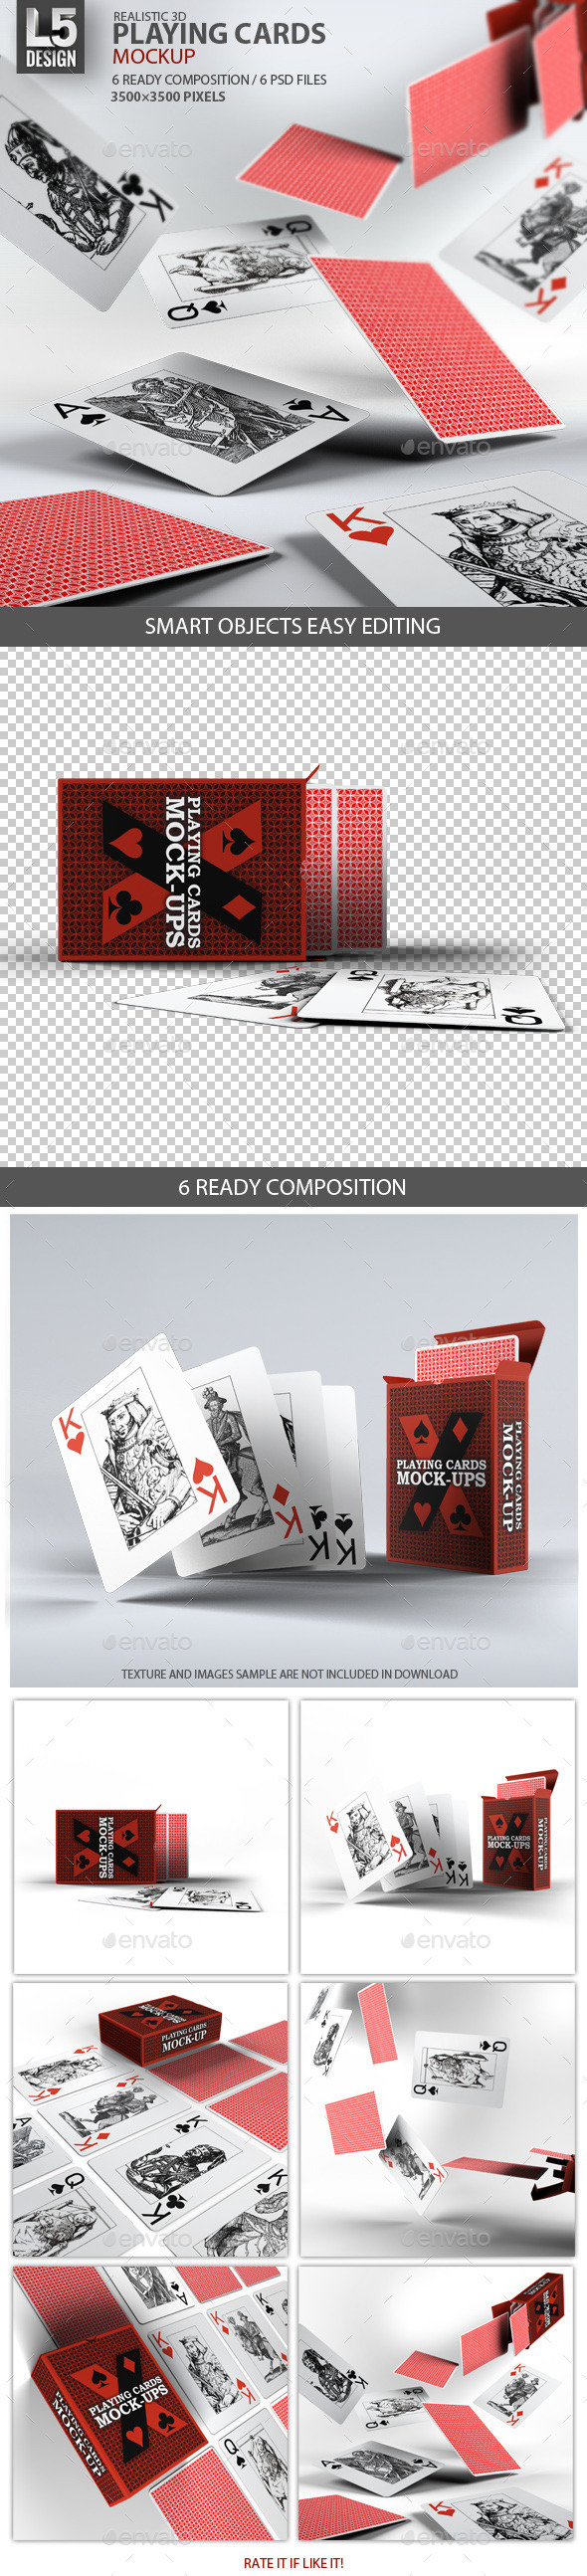 Playing Cards / Card Box Mock-Up - Packaging Product Mock-Ups